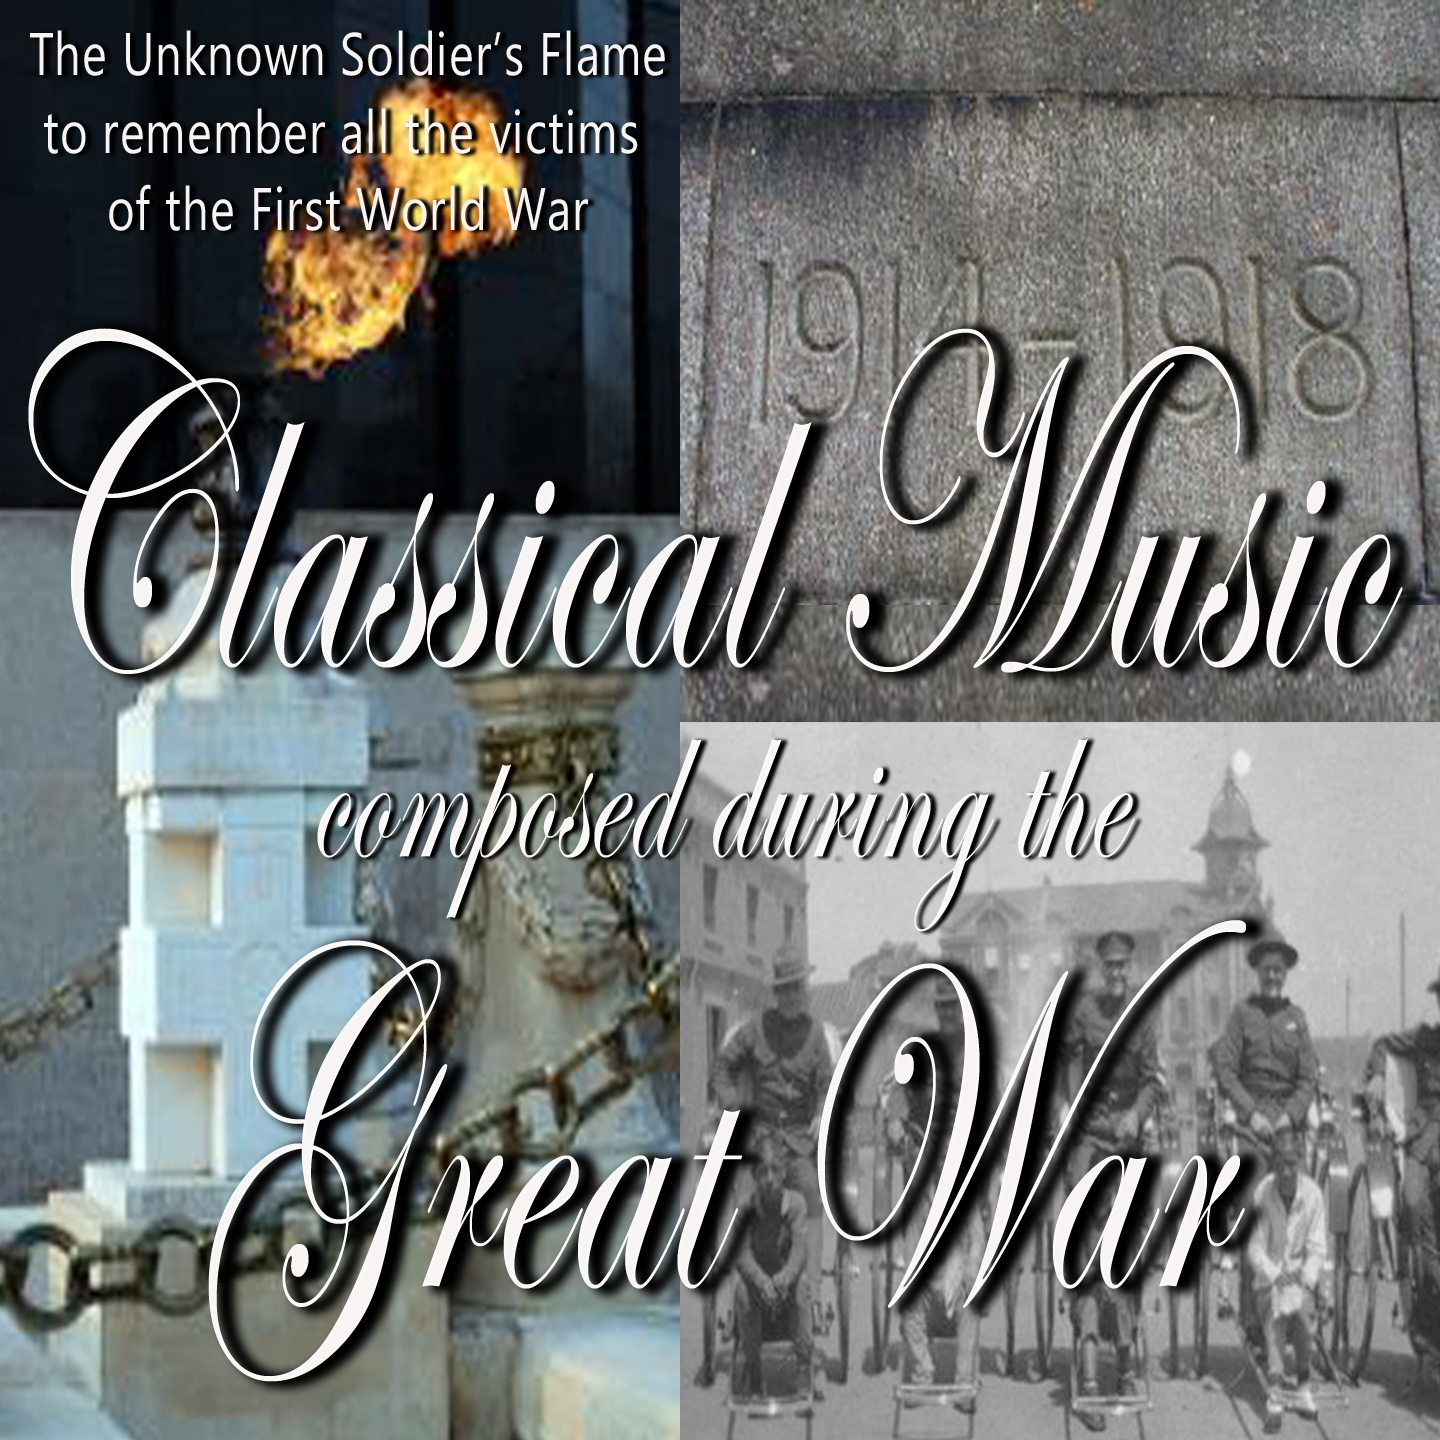 Classical Music Composed During the Great War